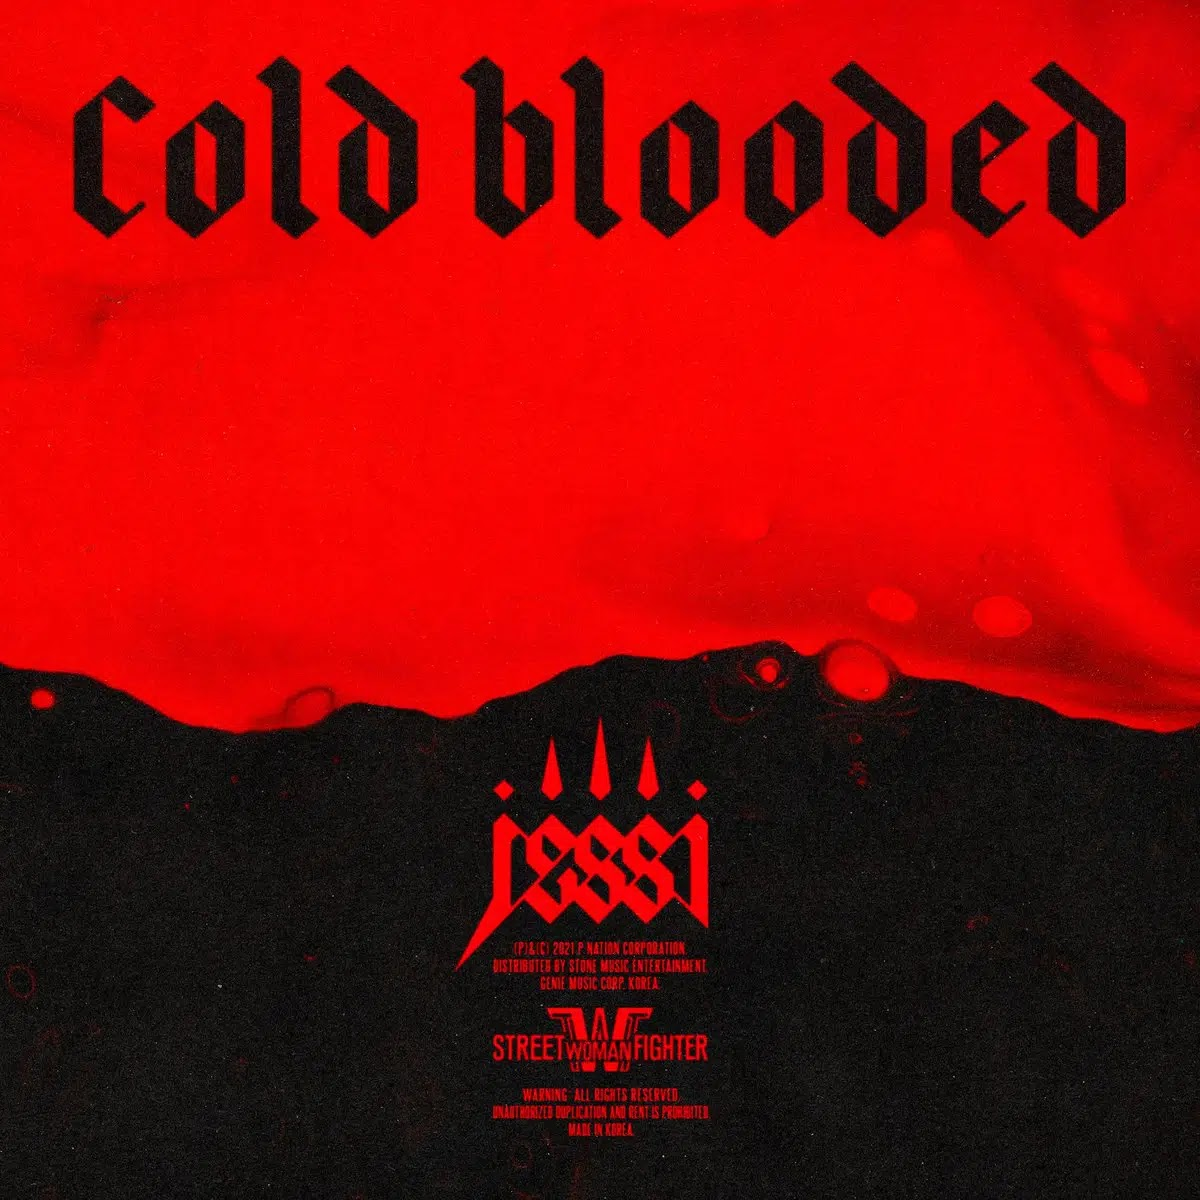 Jessi Will Release Song Titled 'Cold Blooded' For 'Street Woman Fighter'